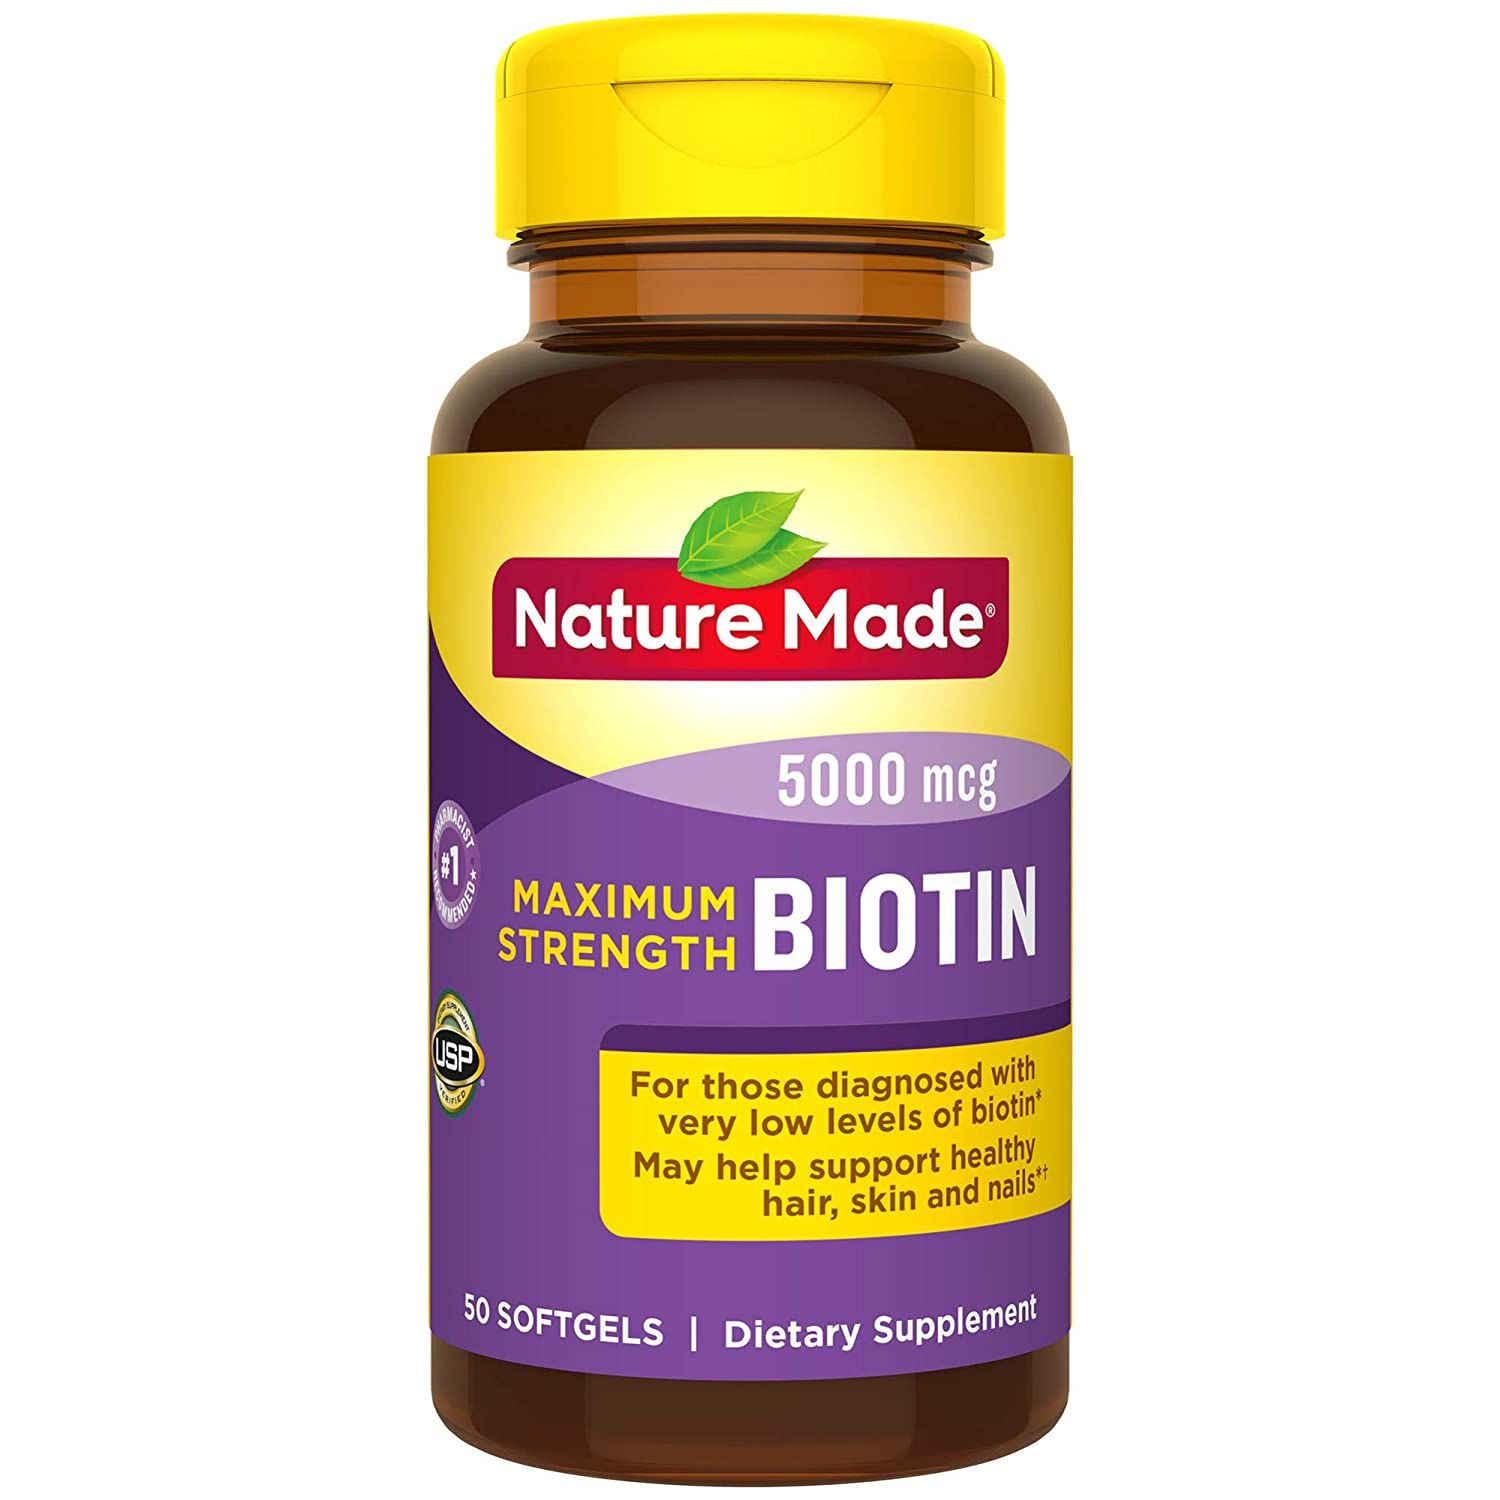 Nature Made Biotin Softgel, 5000 Mcg, 50 Count (Packaging May Vary)